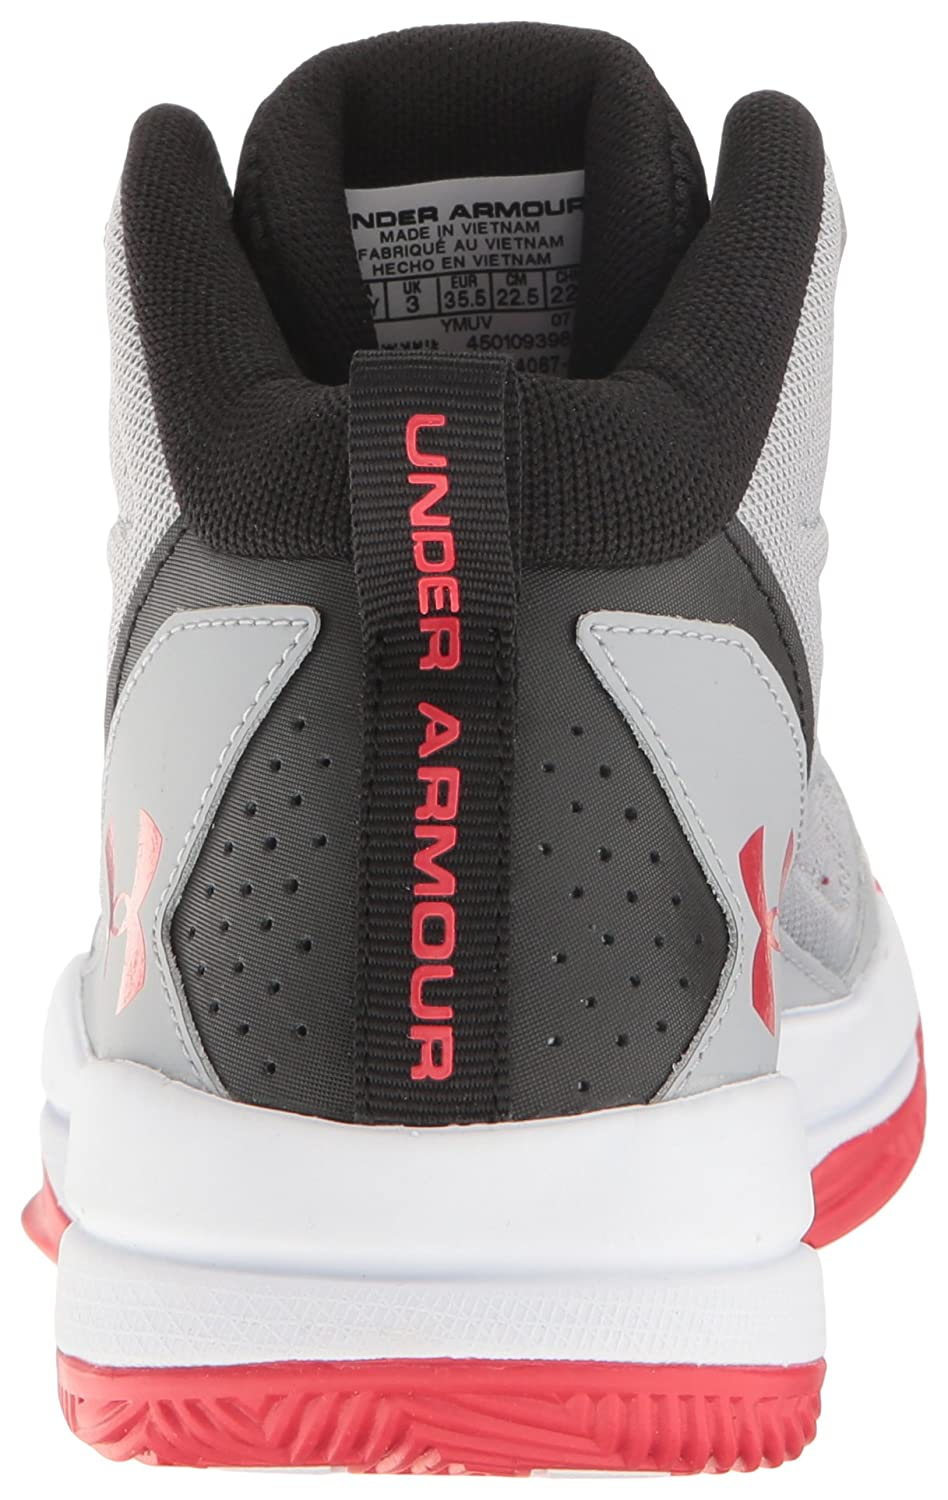 Amazon.com: Under Armour Mens Grade School Jet Mid Basketball Shoe, Overcast Gray (941)/White, 4.5: Shoes